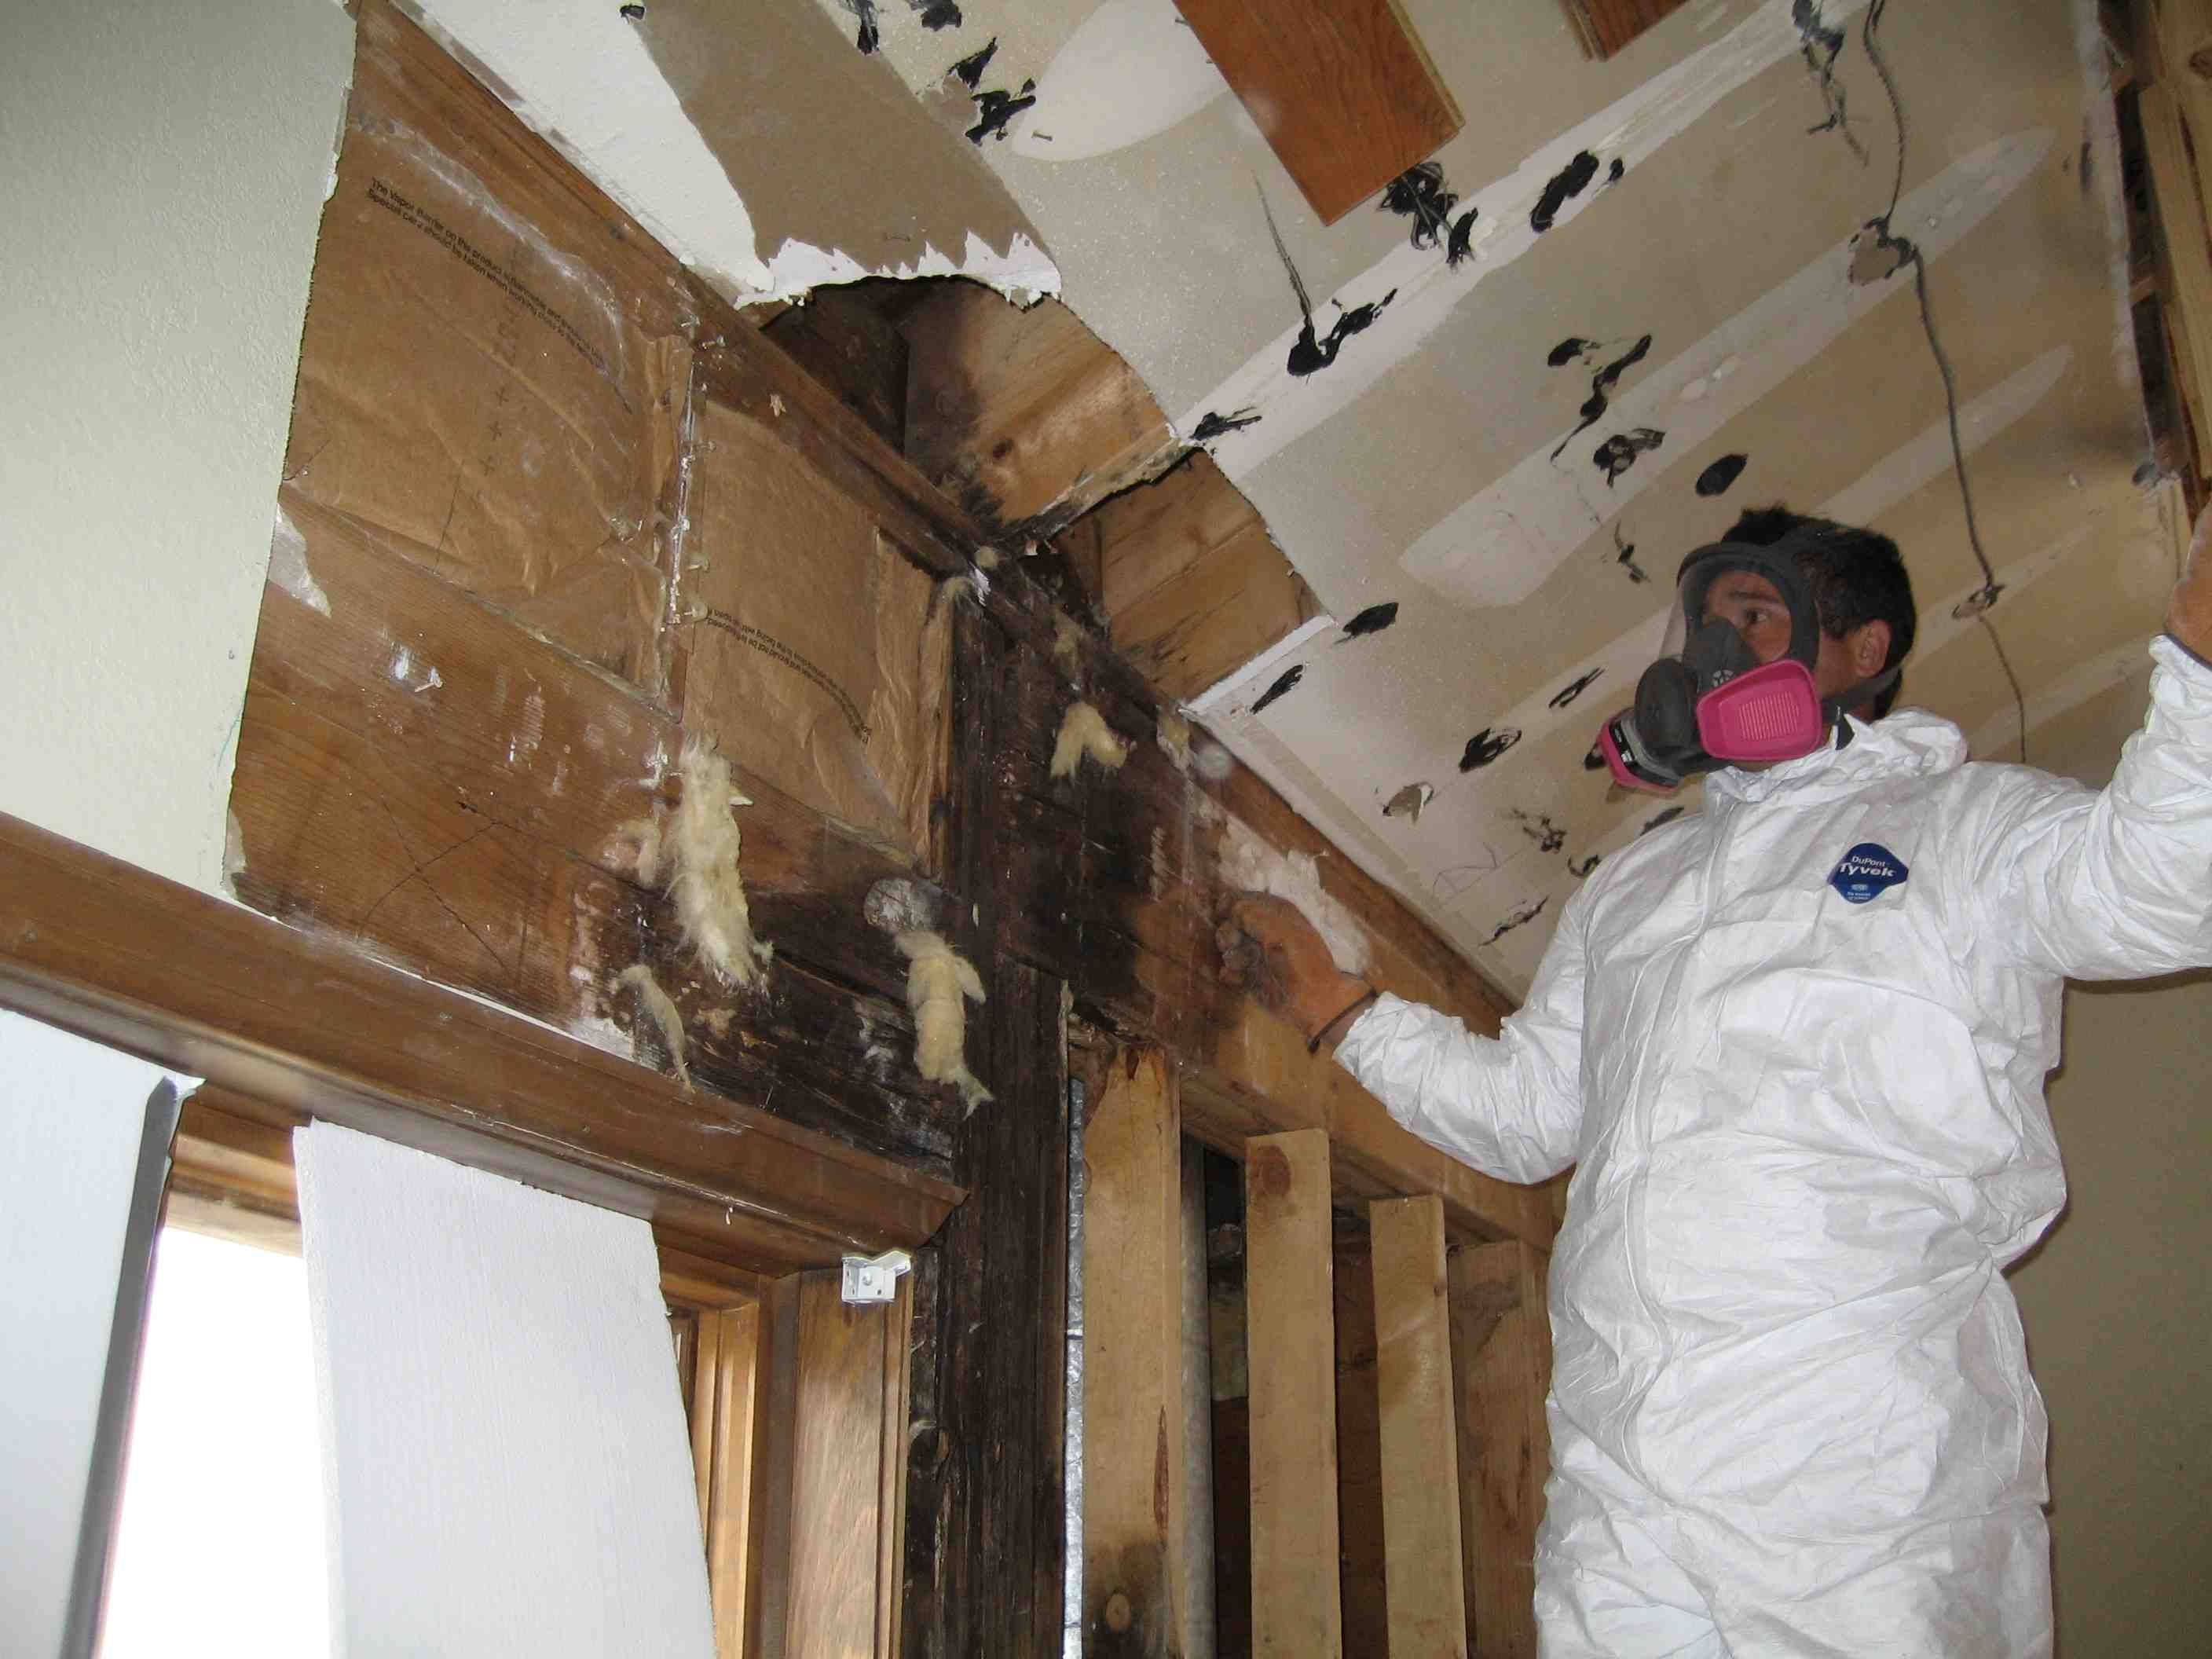 Hasil gambar untuk Remove Mold Safely by Hiring the Expert Mold Remediation Team